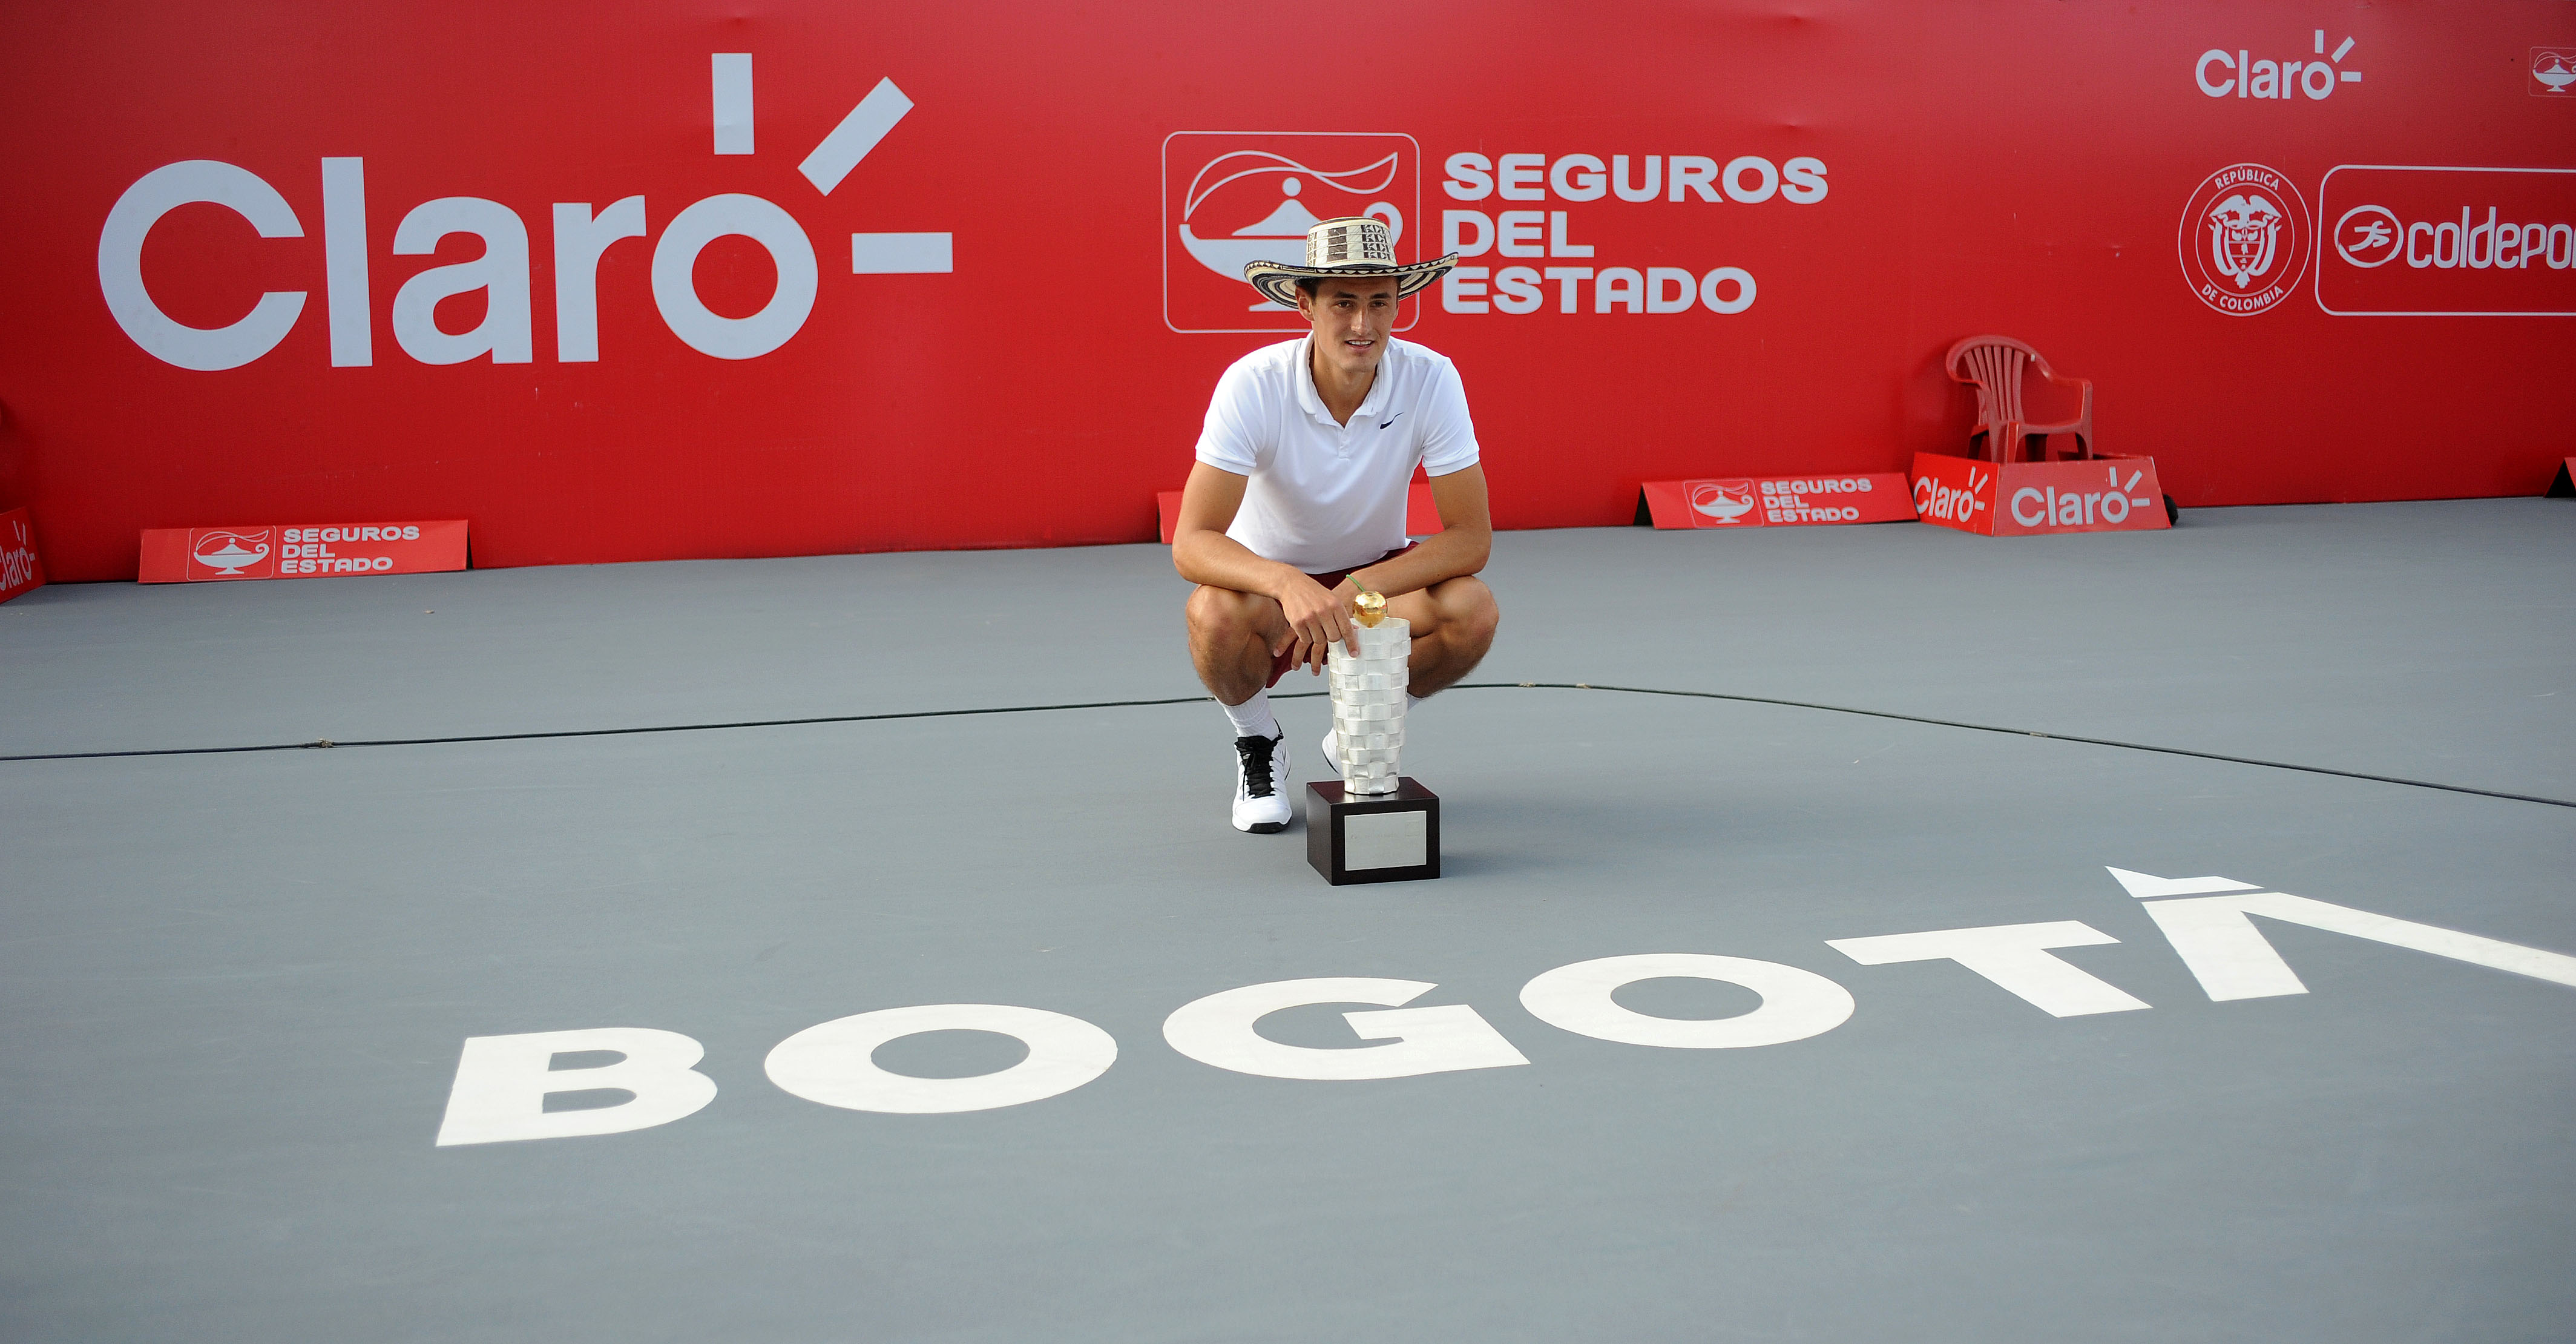 https://www.fedecoltenis.com/userfiles/ACTUALIDAD/A CLARO OPEN/martes 21/jueves/tomic.jpg